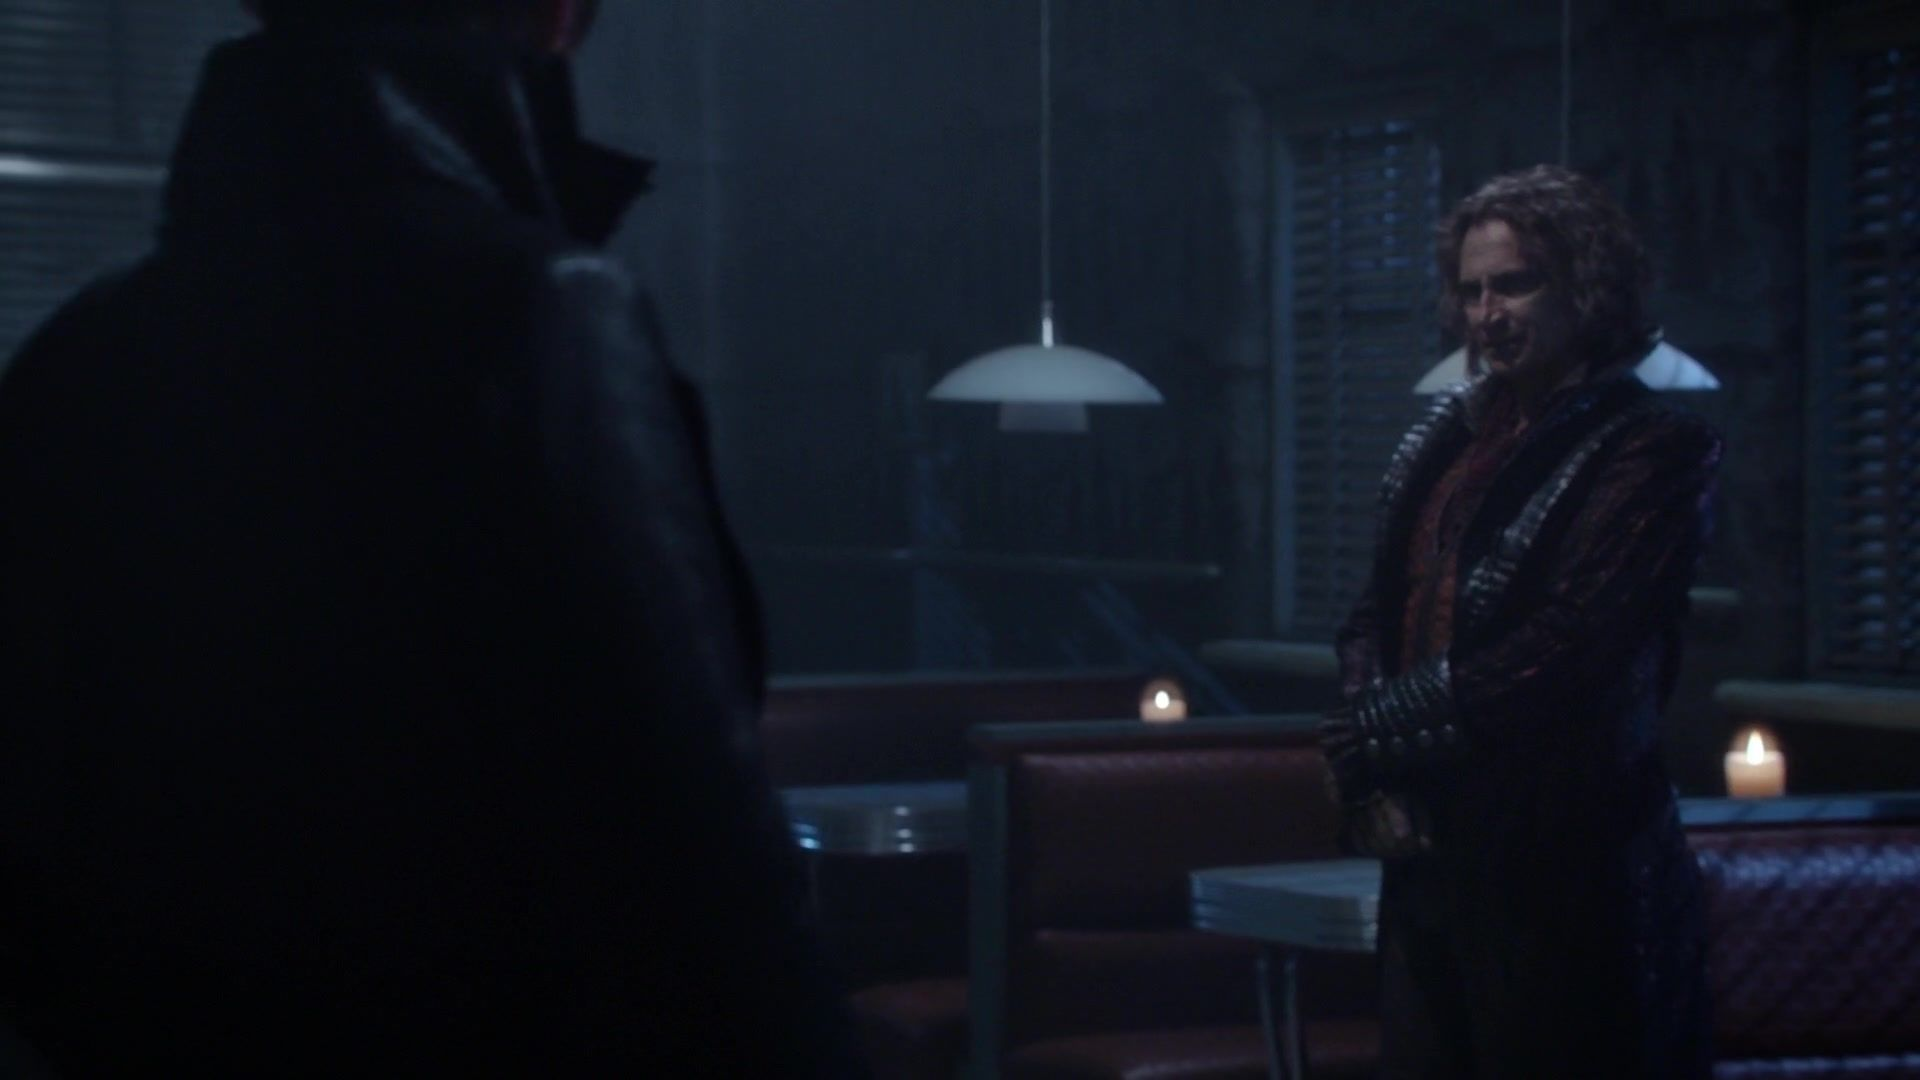 5.10 Broken Heart - Once Upon a Time S05E10 1080p 2211 - Once Upon a Time High Quality Screencaps Gallery